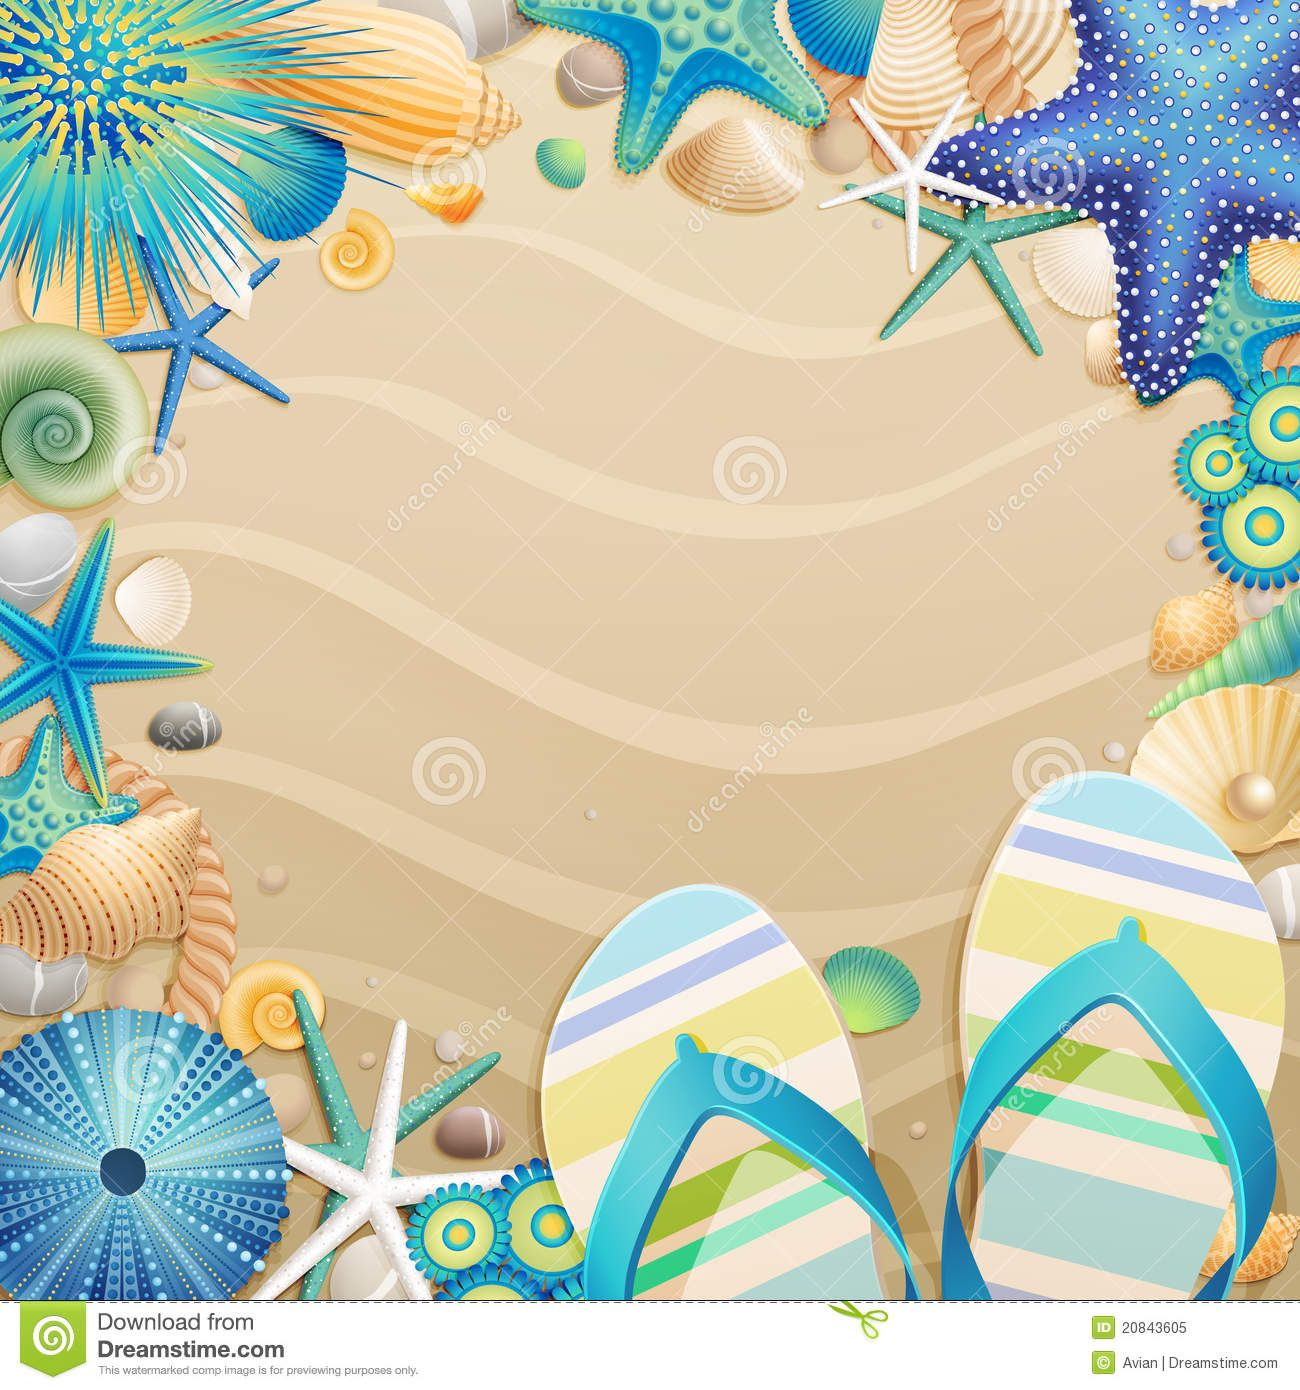 medium resolution of free clipart images of flip flops on the beach google search